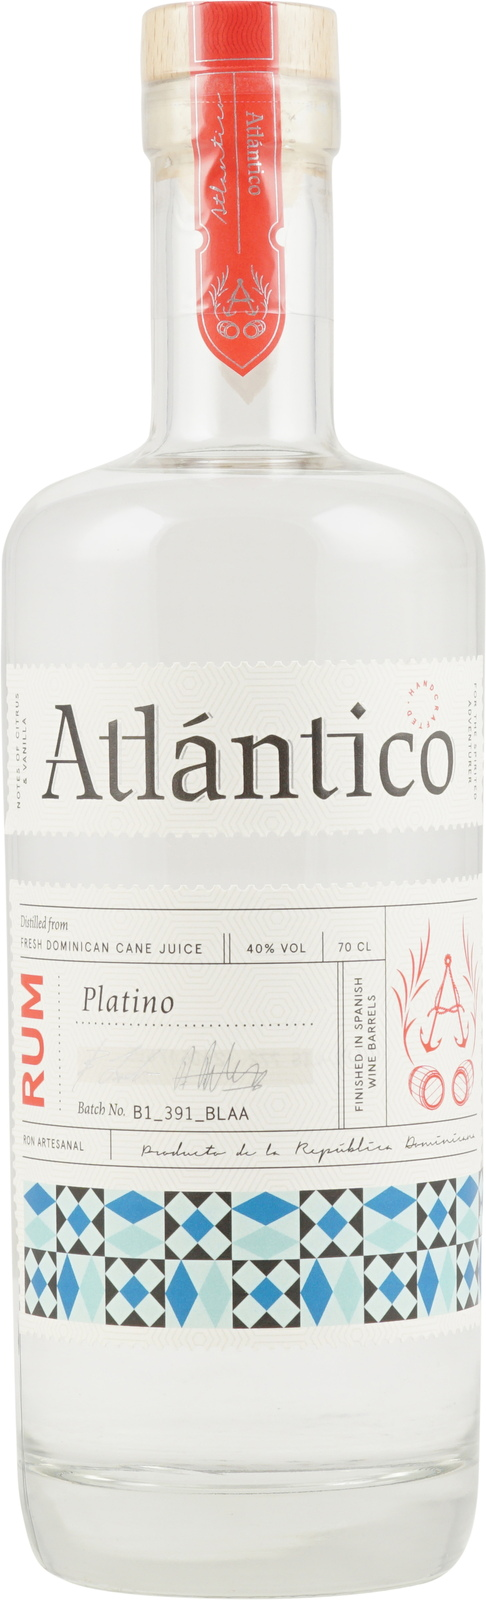 Atlantico CO Ron Atlantico Platino, 40%, 0,7l